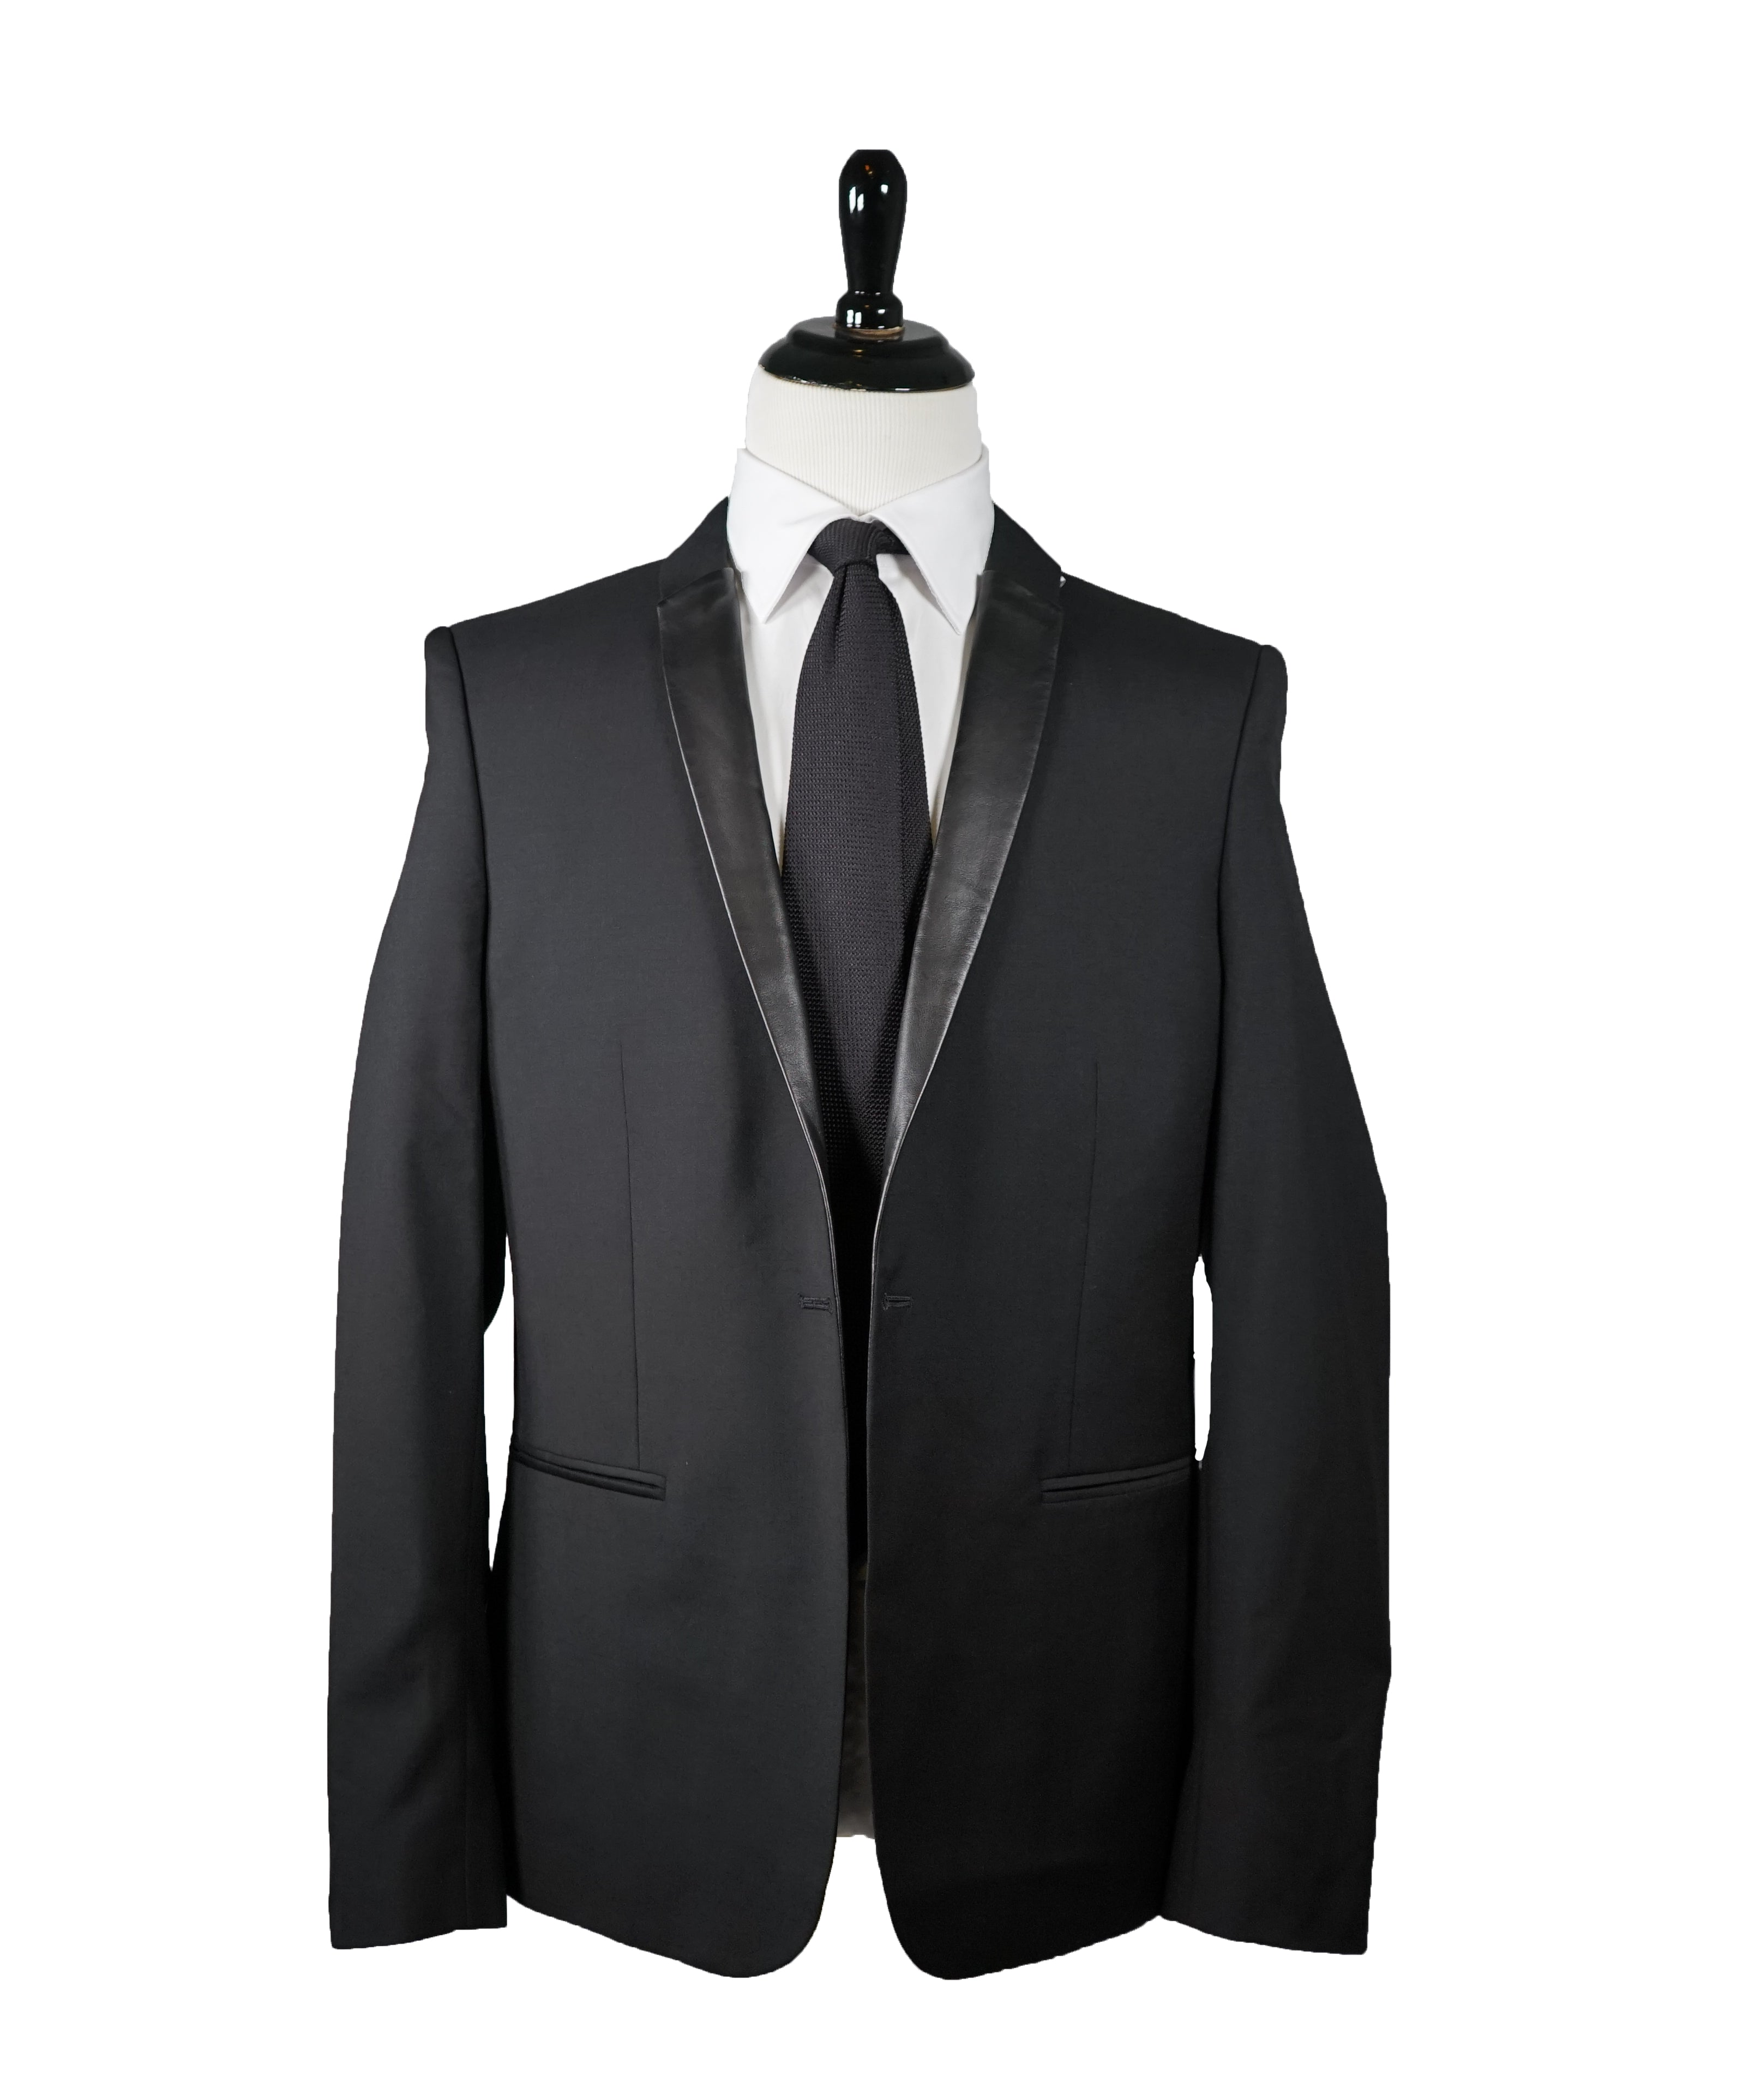 THE KOOPLES - Lambskin Leather Lapel Wool Dinner Jacket - 42R